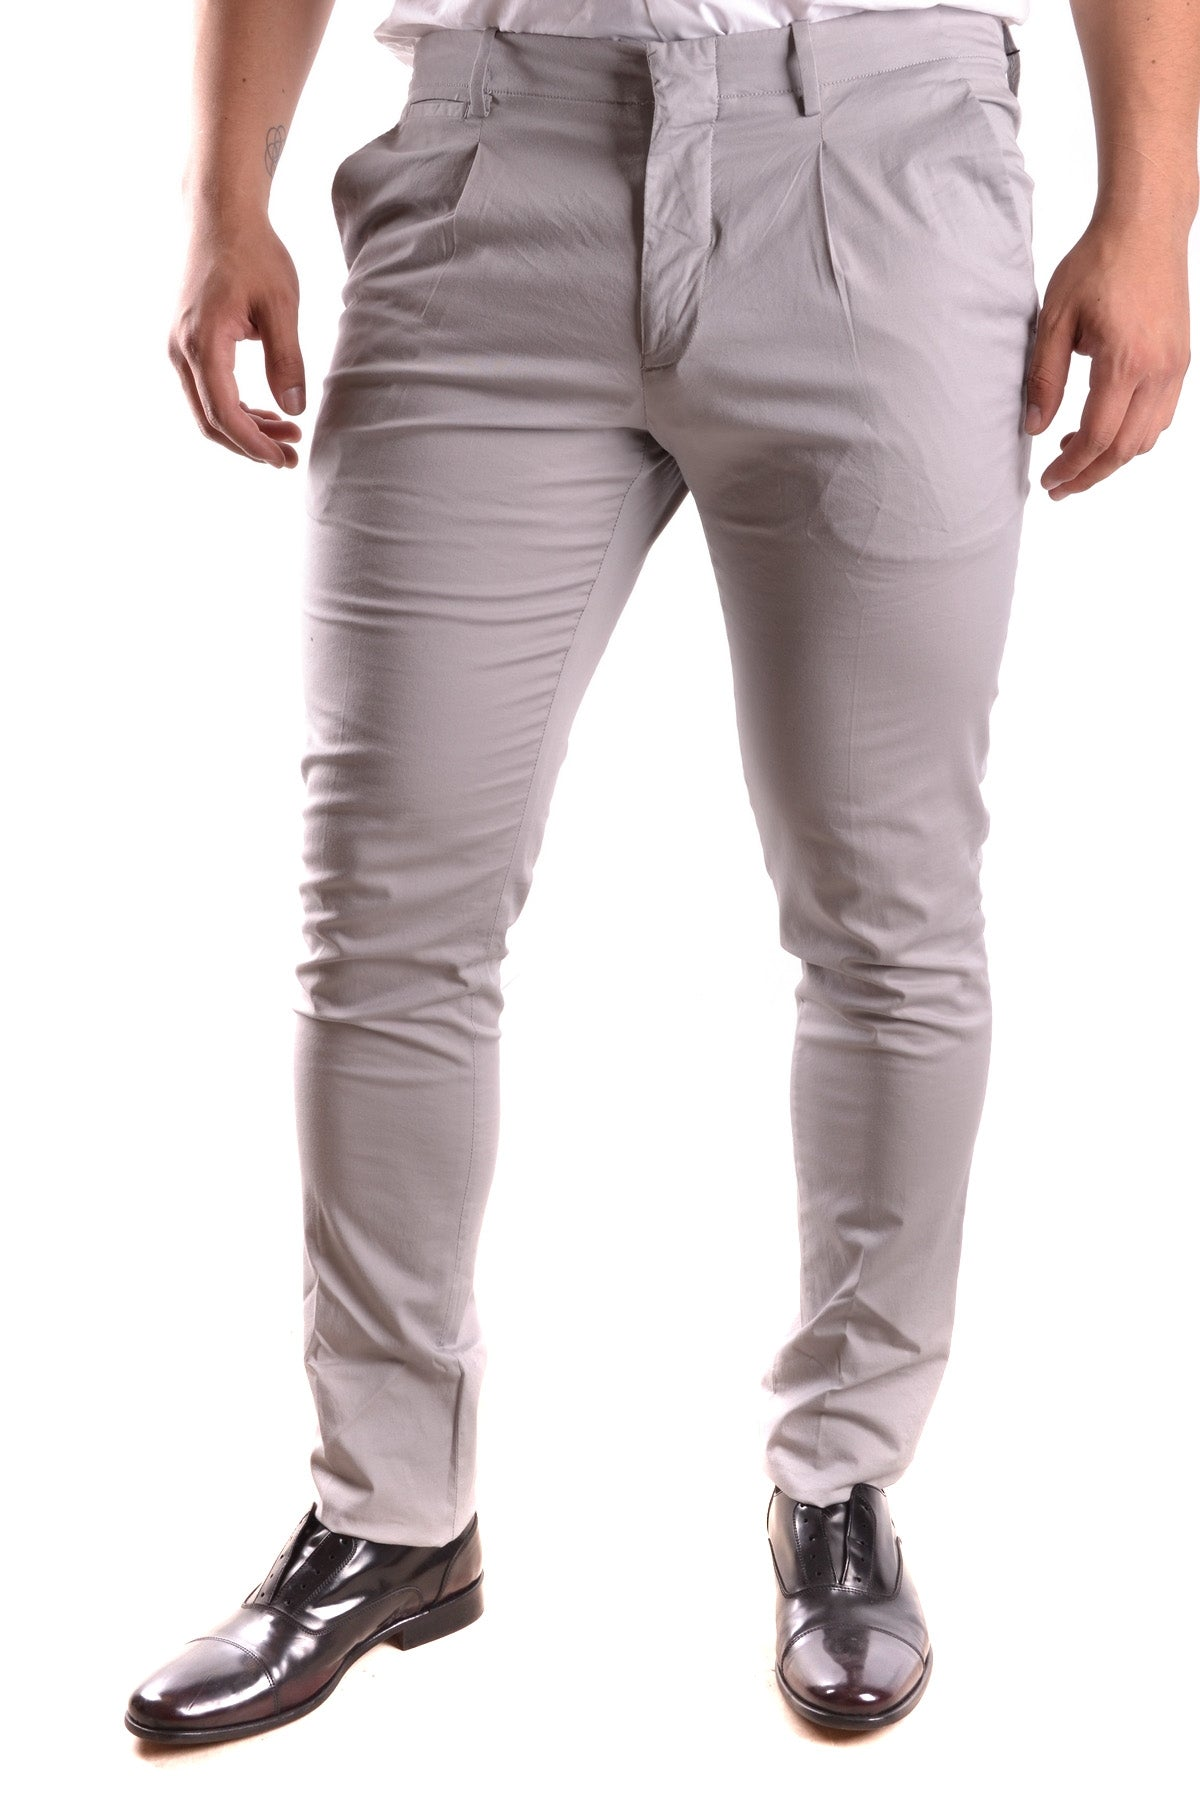 Trousers Michael Kors-Trousers - MAN-31-Product Details Terms: New With LabelYear: 2017Main Color: GraySeason: Spring / SummerMade In: ChinaSize: UsGender: ManClothing Type: TrousersComposition: Cotton 99%, Elastane 1%-Keyomi-Sook